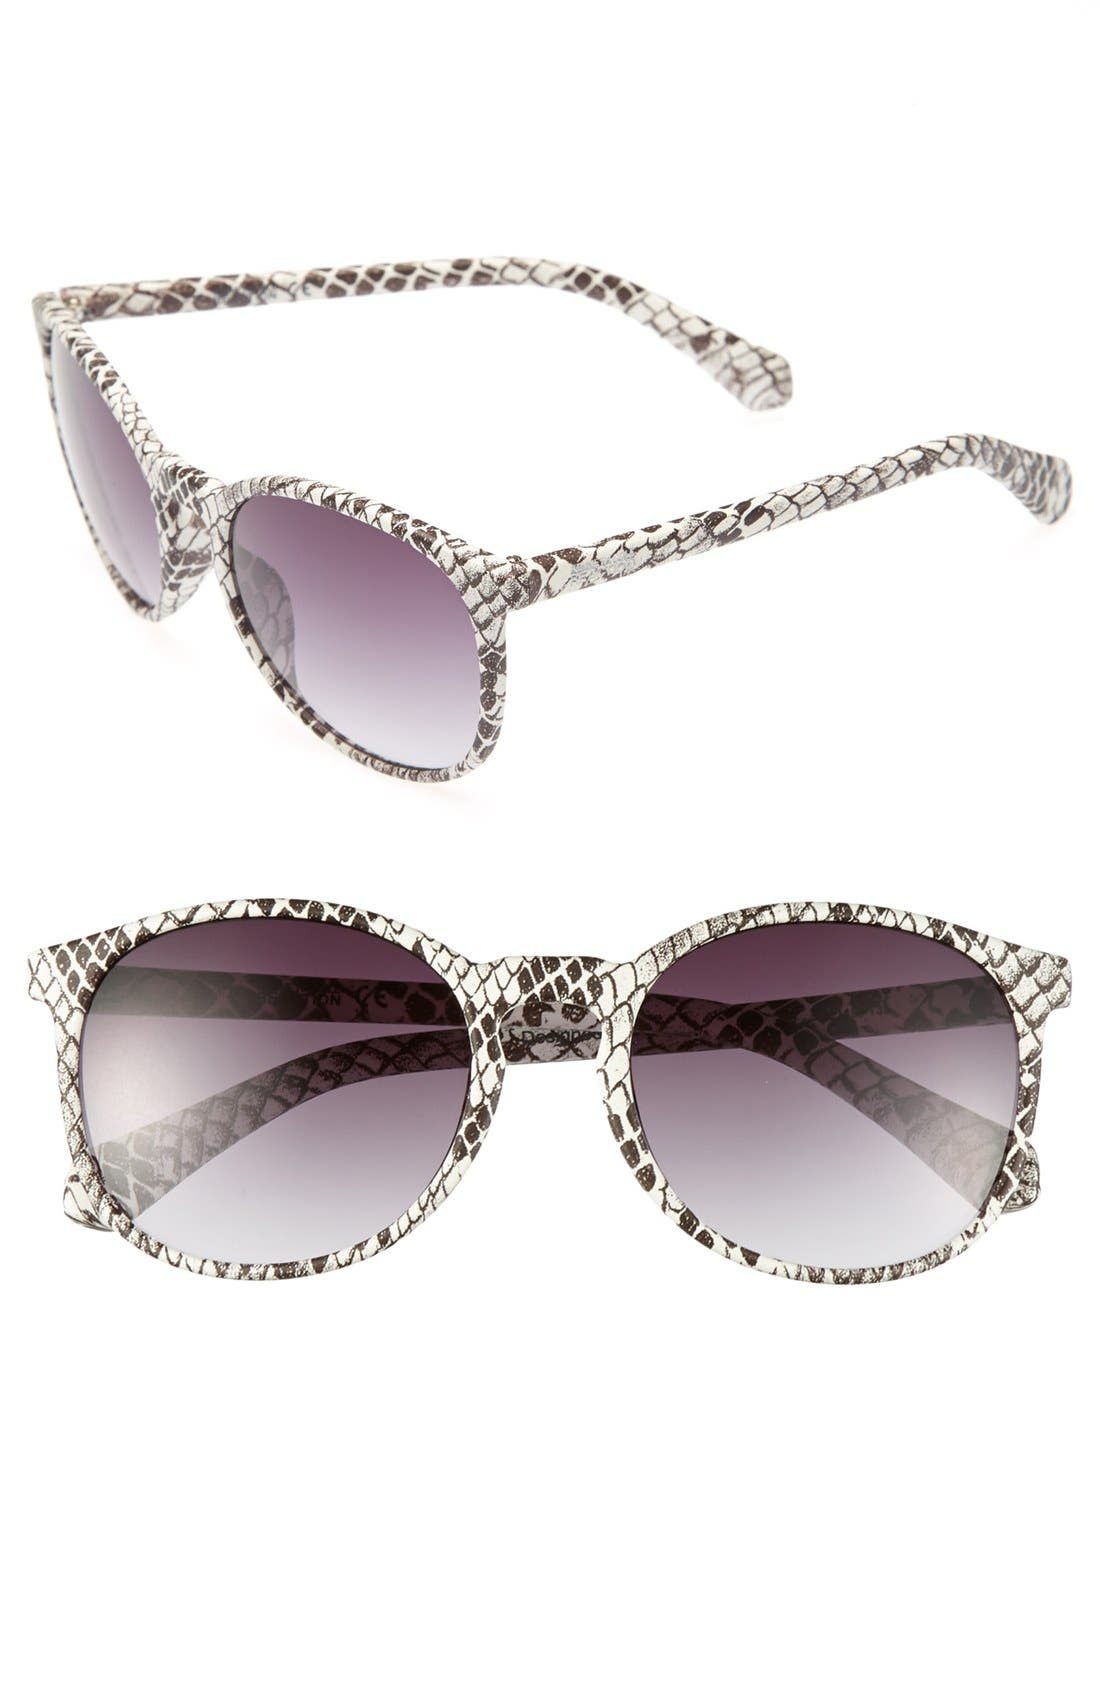 Alternate Image 1 Selected - Kenneth Cole Reaction 54mm Sunglasses